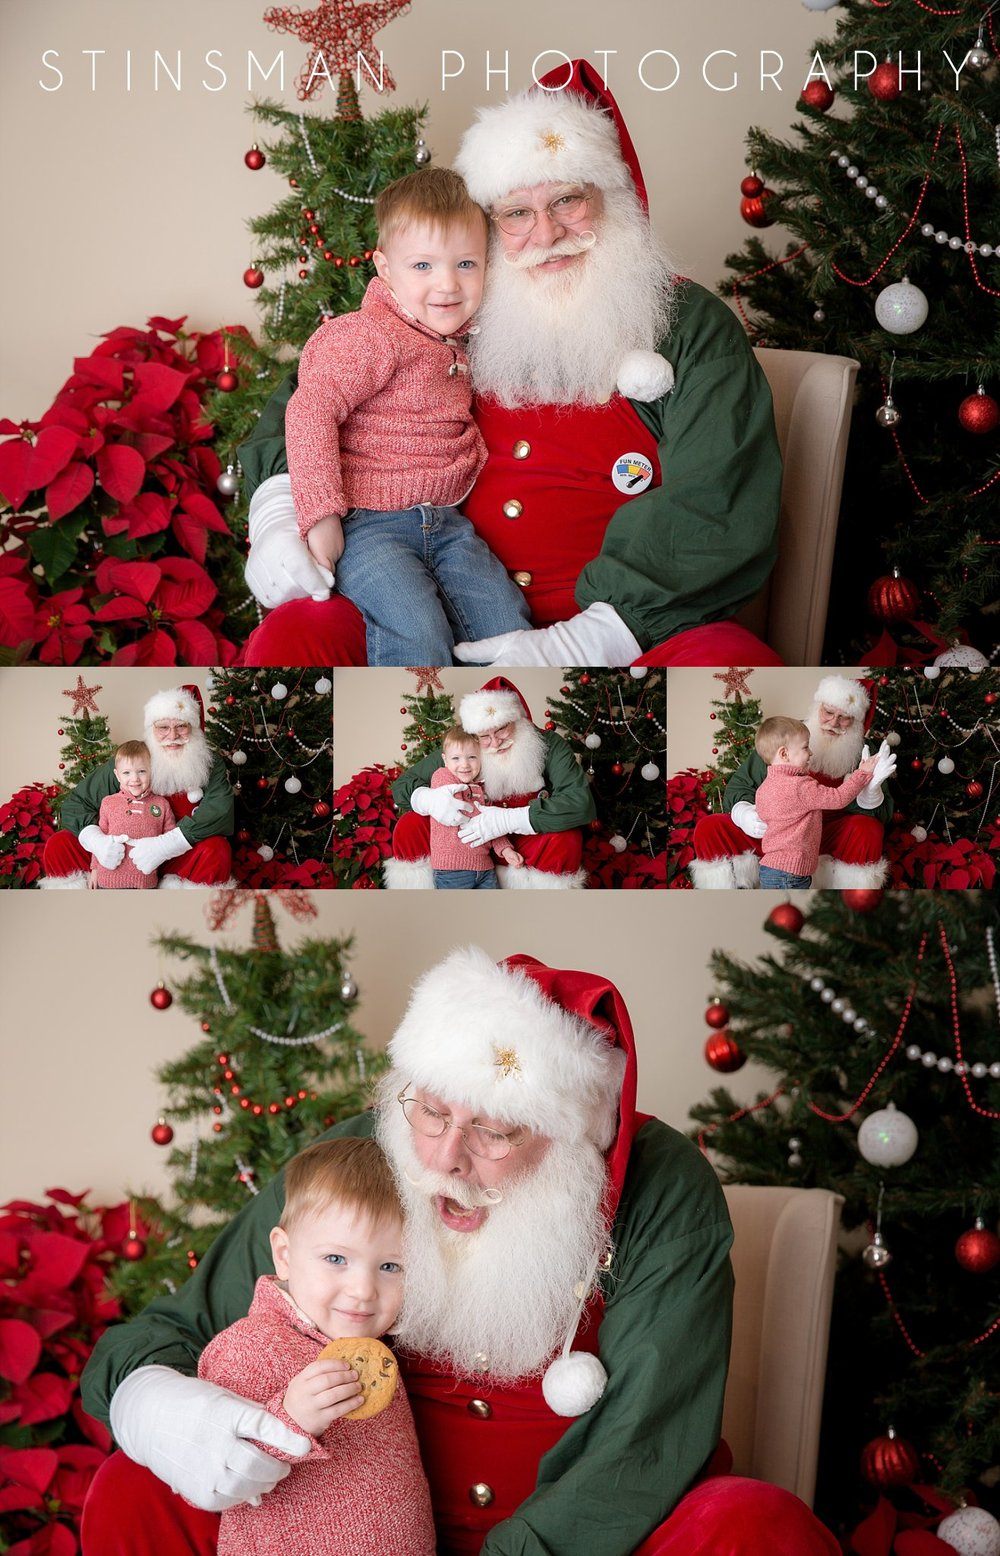 boy wearing a red sweater and eating a cookie with santa in south jersey photo shoot